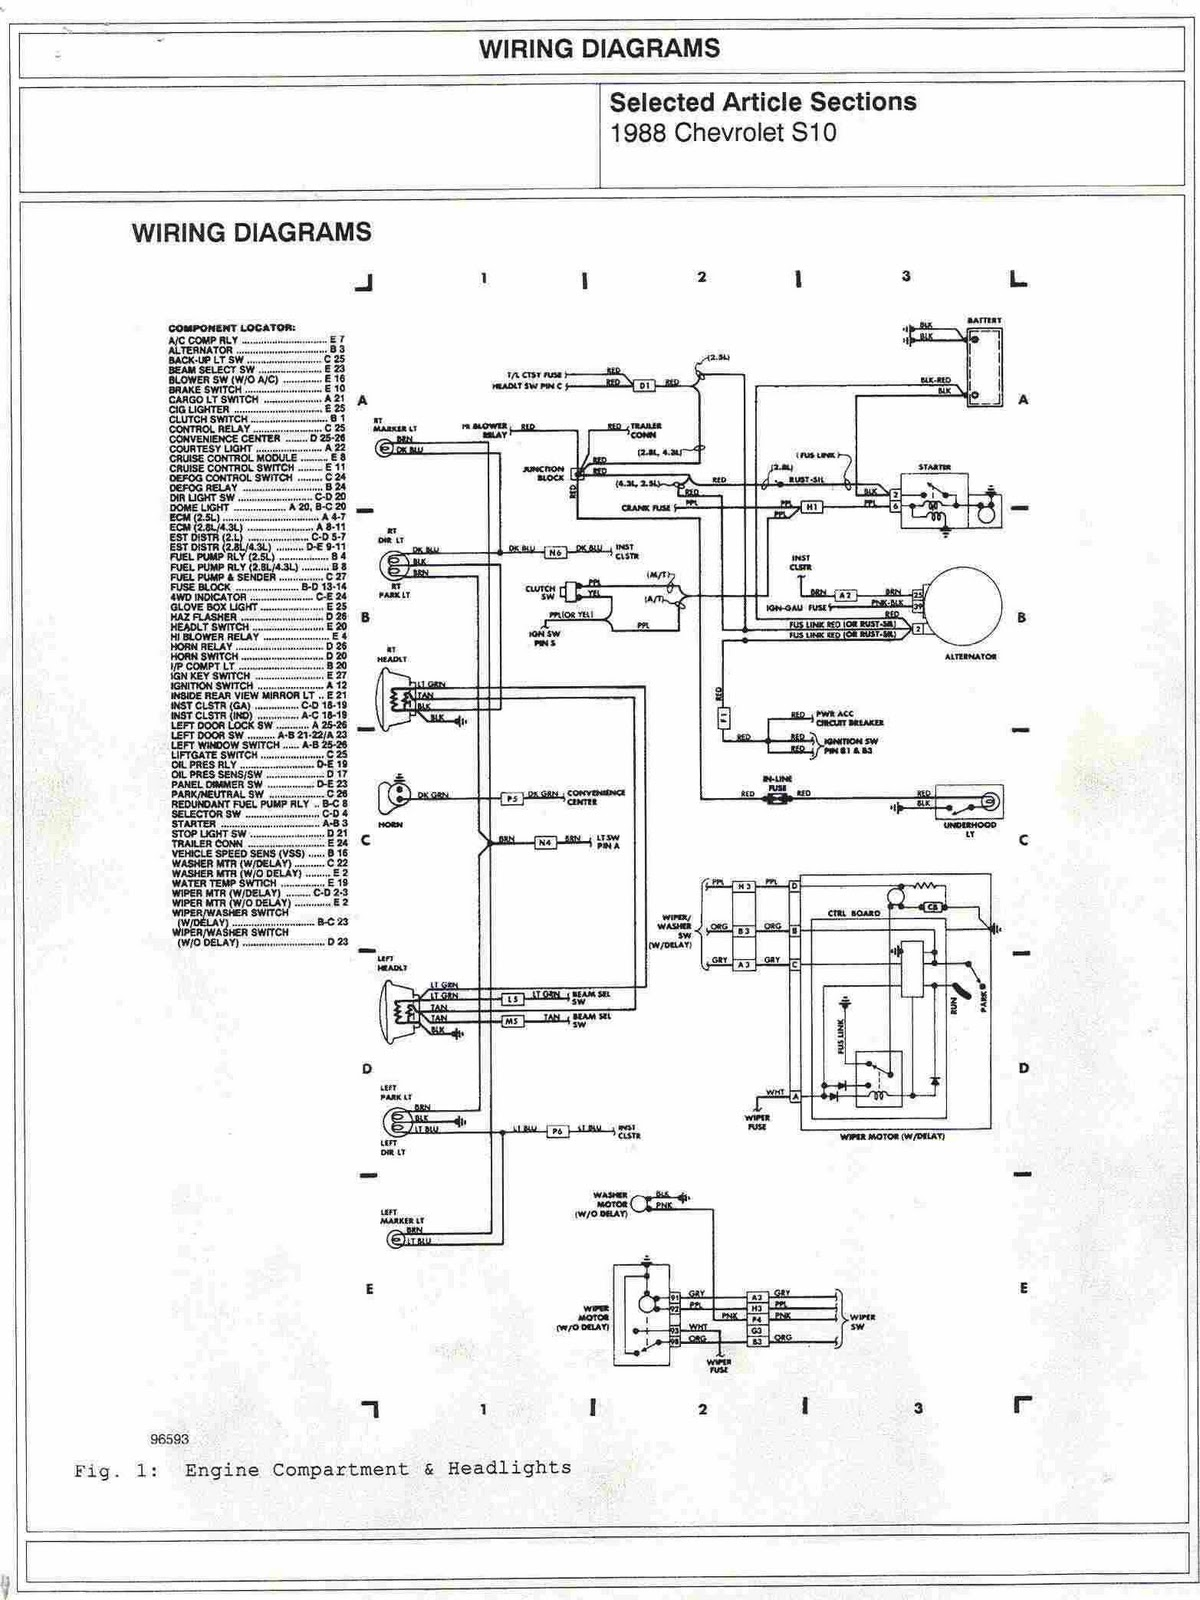 1988+Chevrolet+S10+Engine+Compartment+and+Headlights+Wiring+Diagrams 95 s10 wiring diagram 95 tahoe wiring diagram \u2022 wiring diagrams 1995 Chevrolet Suburban Interior at soozxer.org